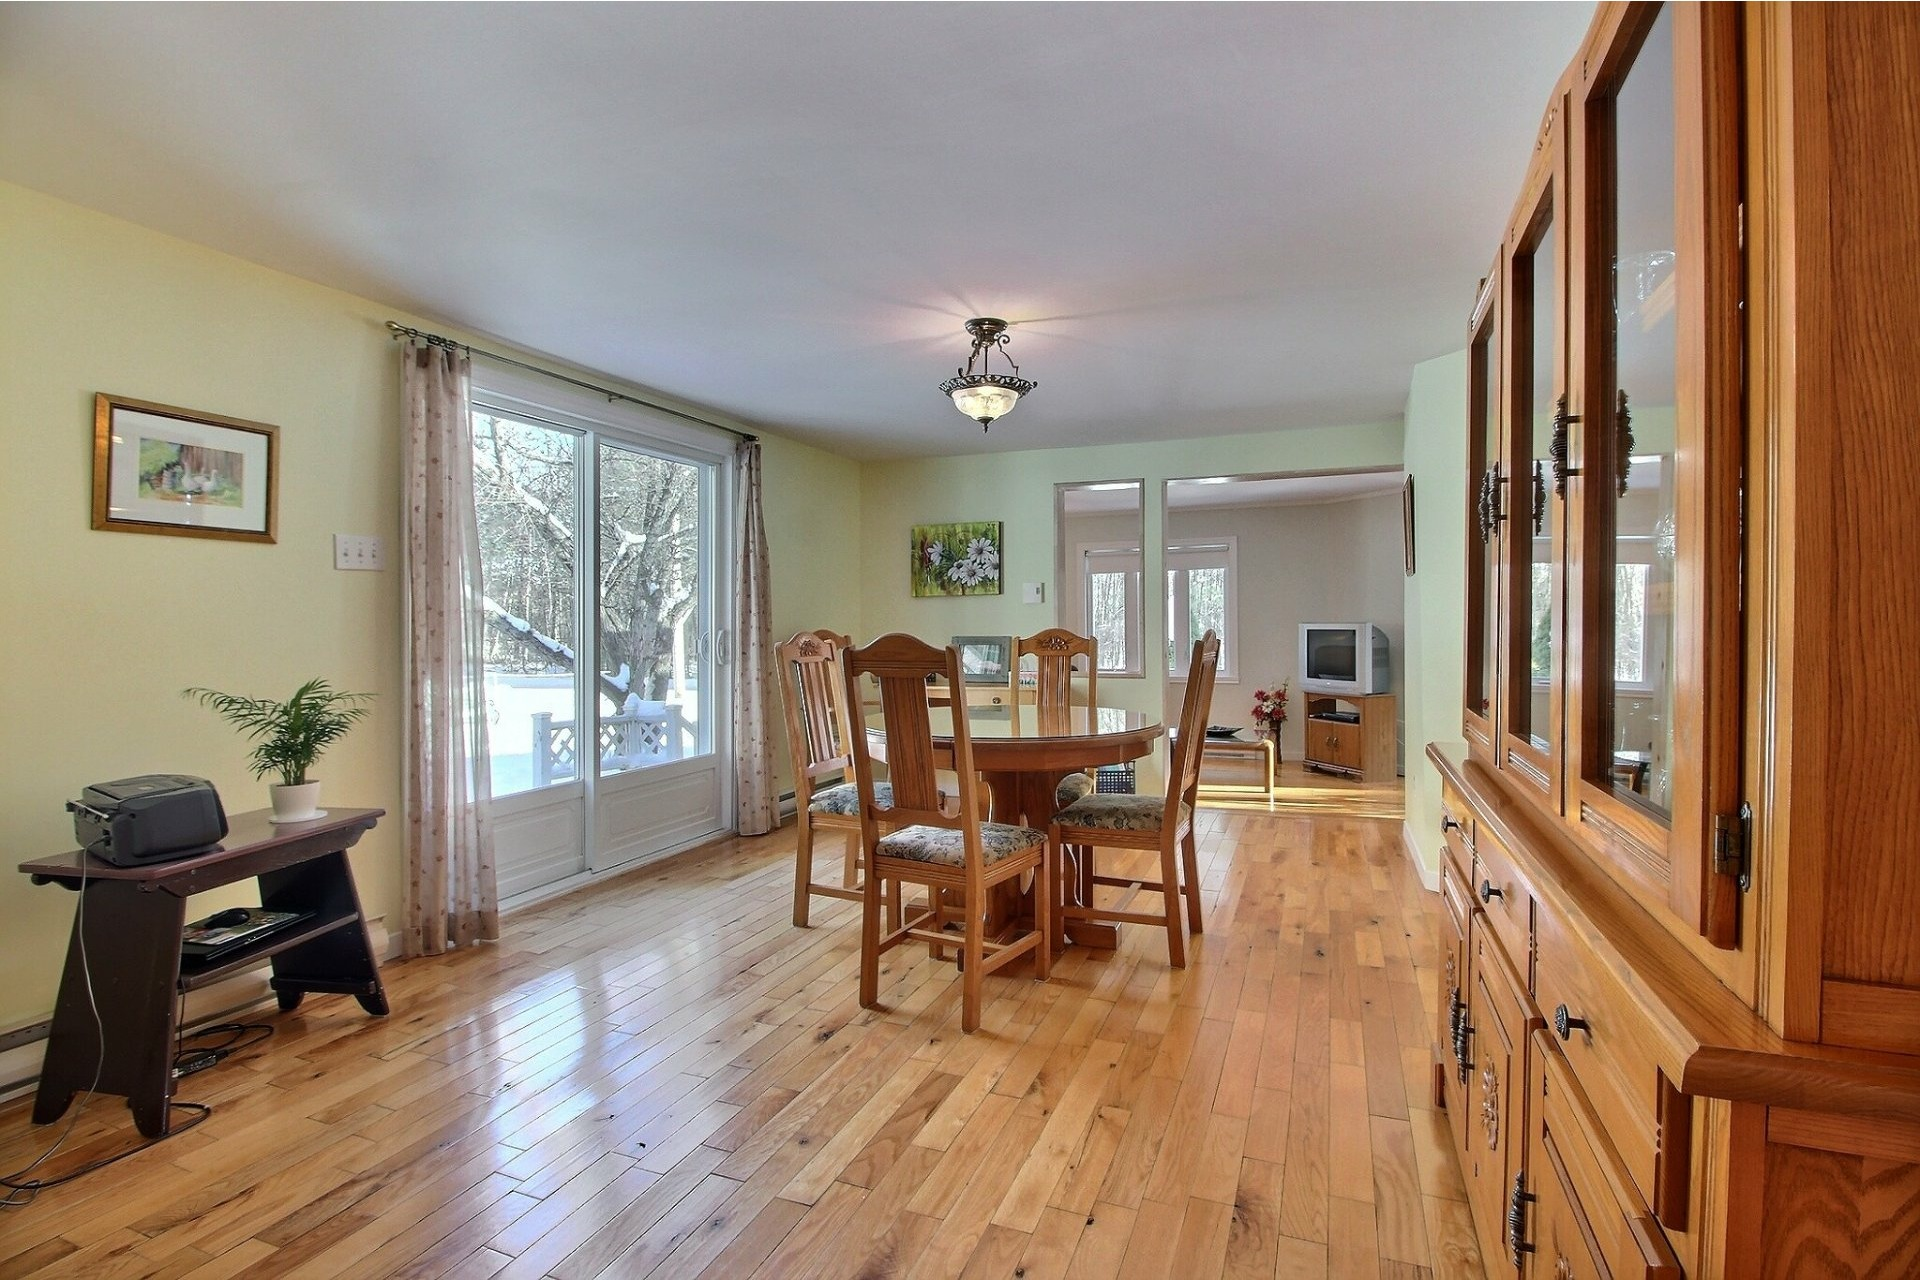 image 8 - House For sale Rawdon - 8 rooms